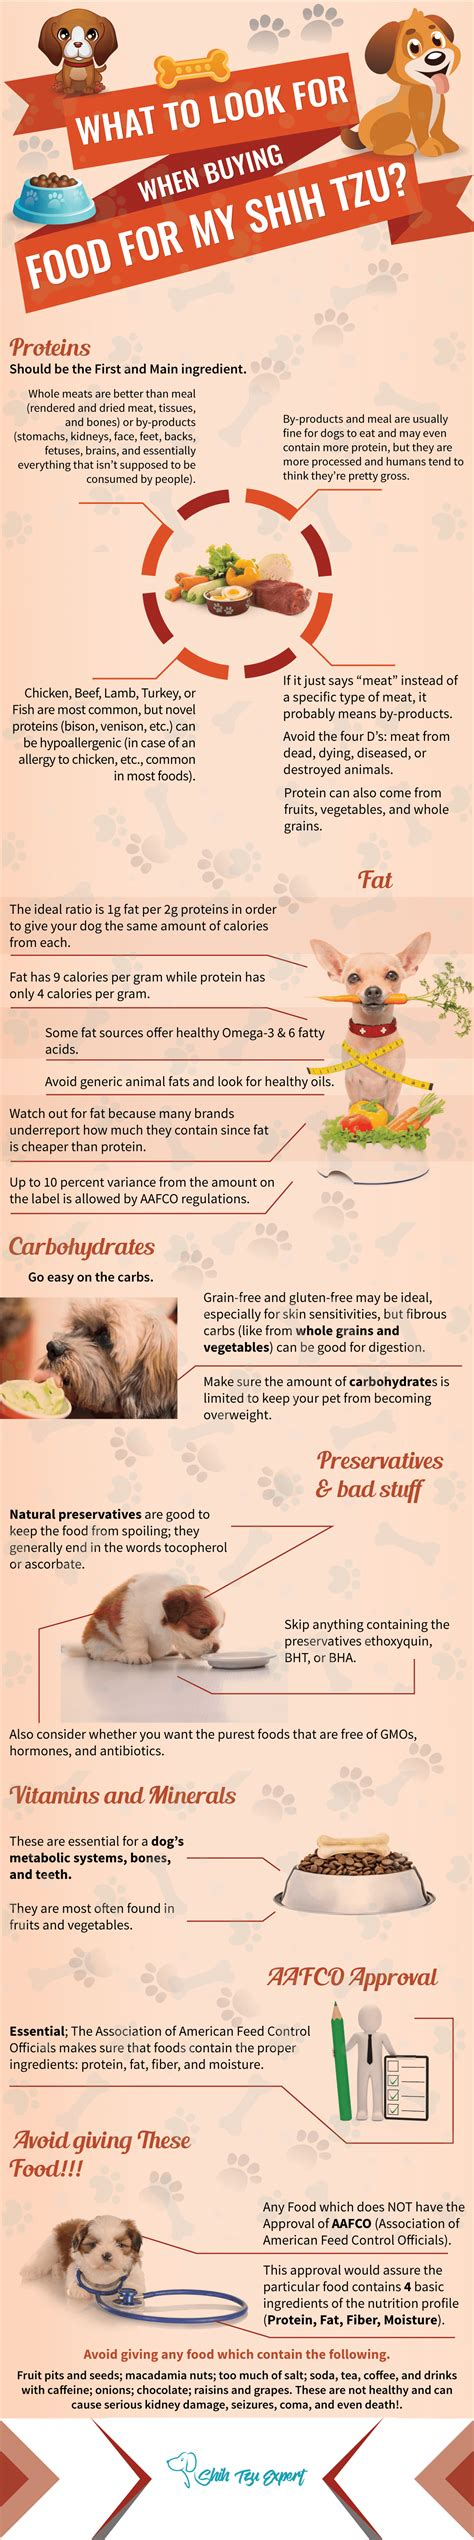 the best food for shih tzu how to find the best food for shih tzu